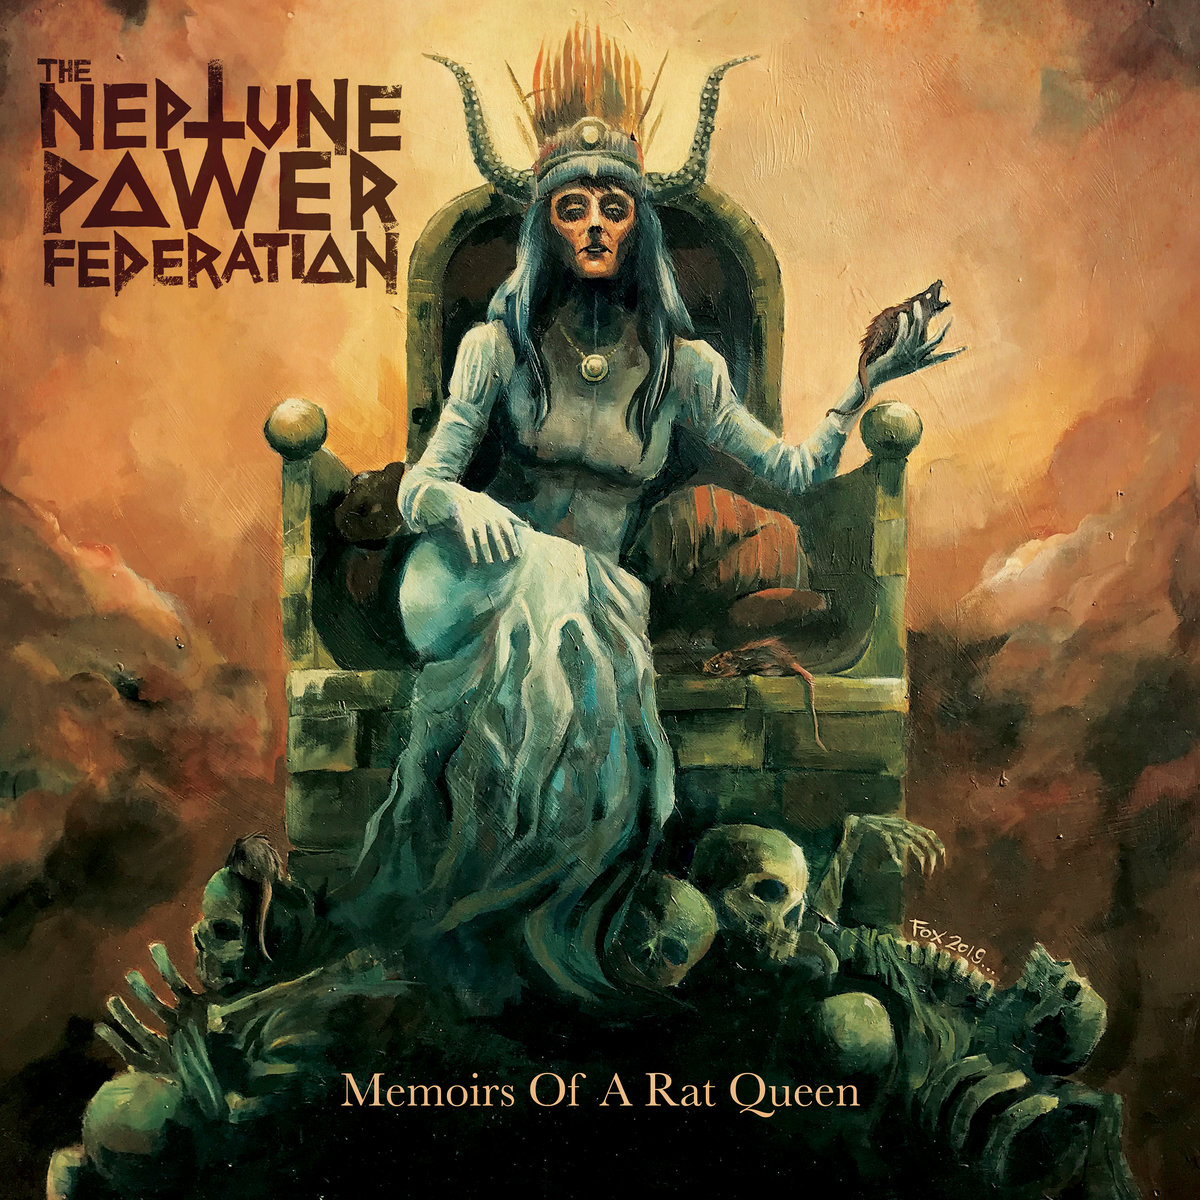 the neptune power federation memoirs of a rat queen